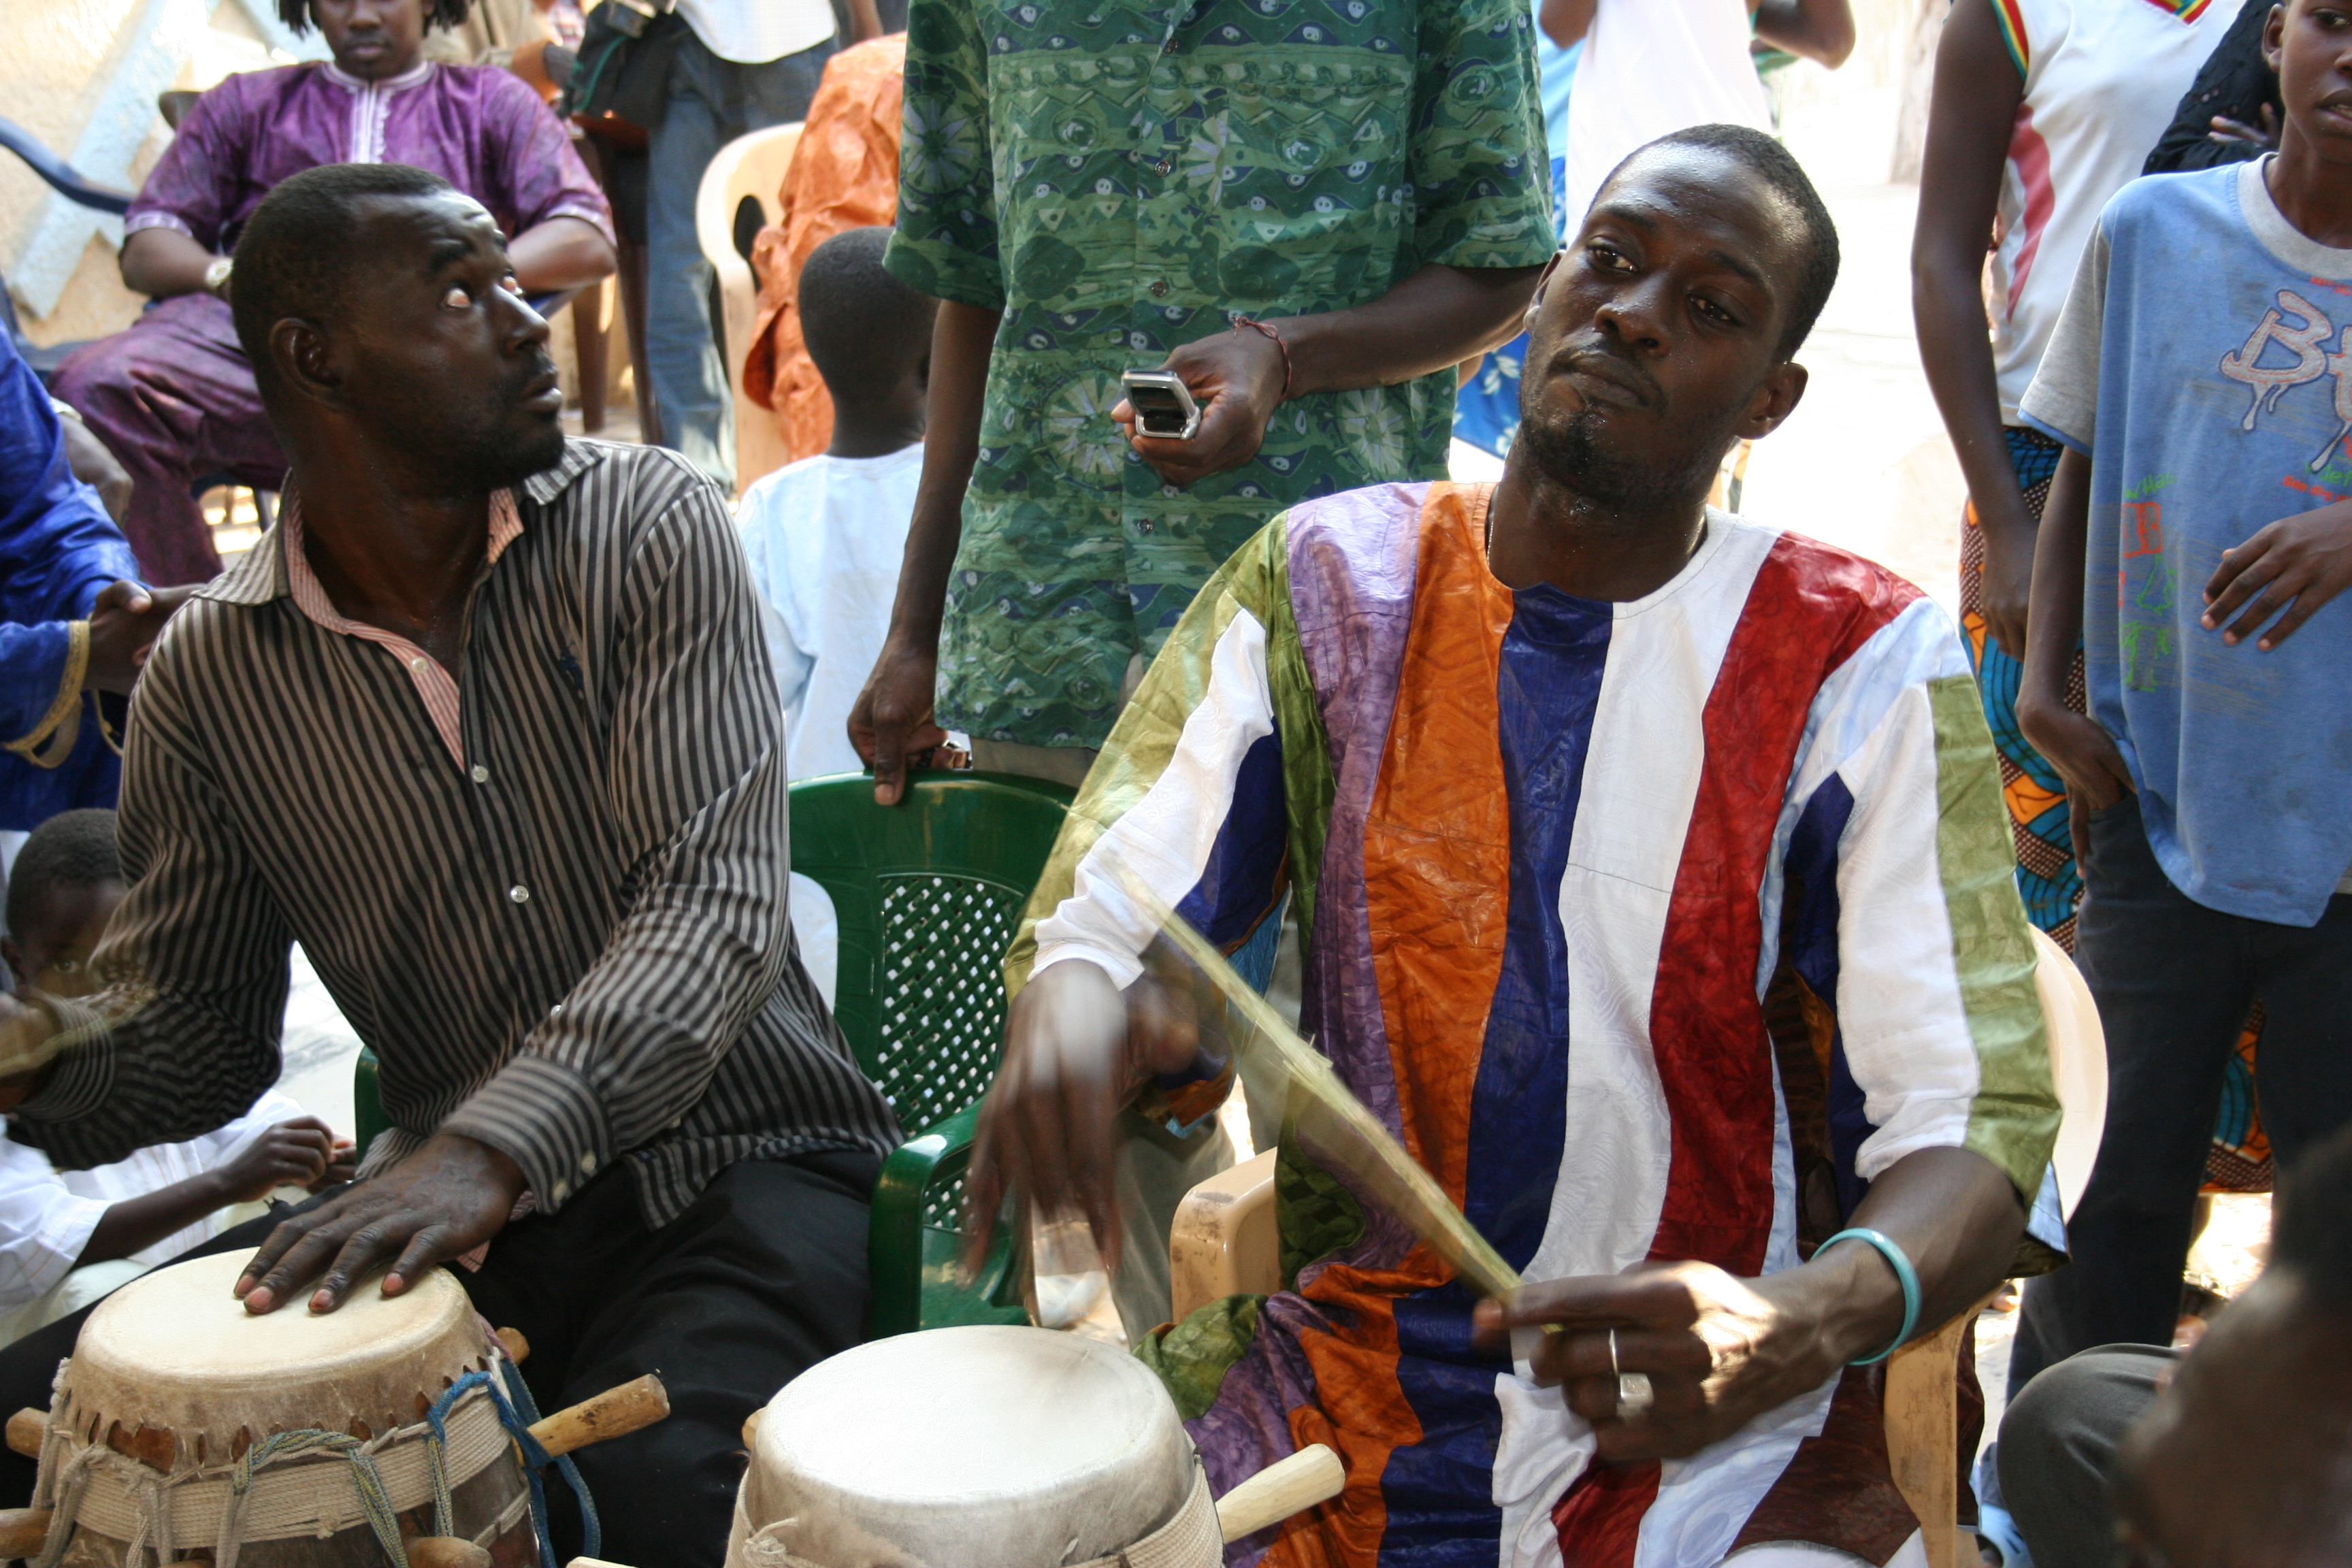 Moustapha Faye playing col with Abdoulaye Ba.